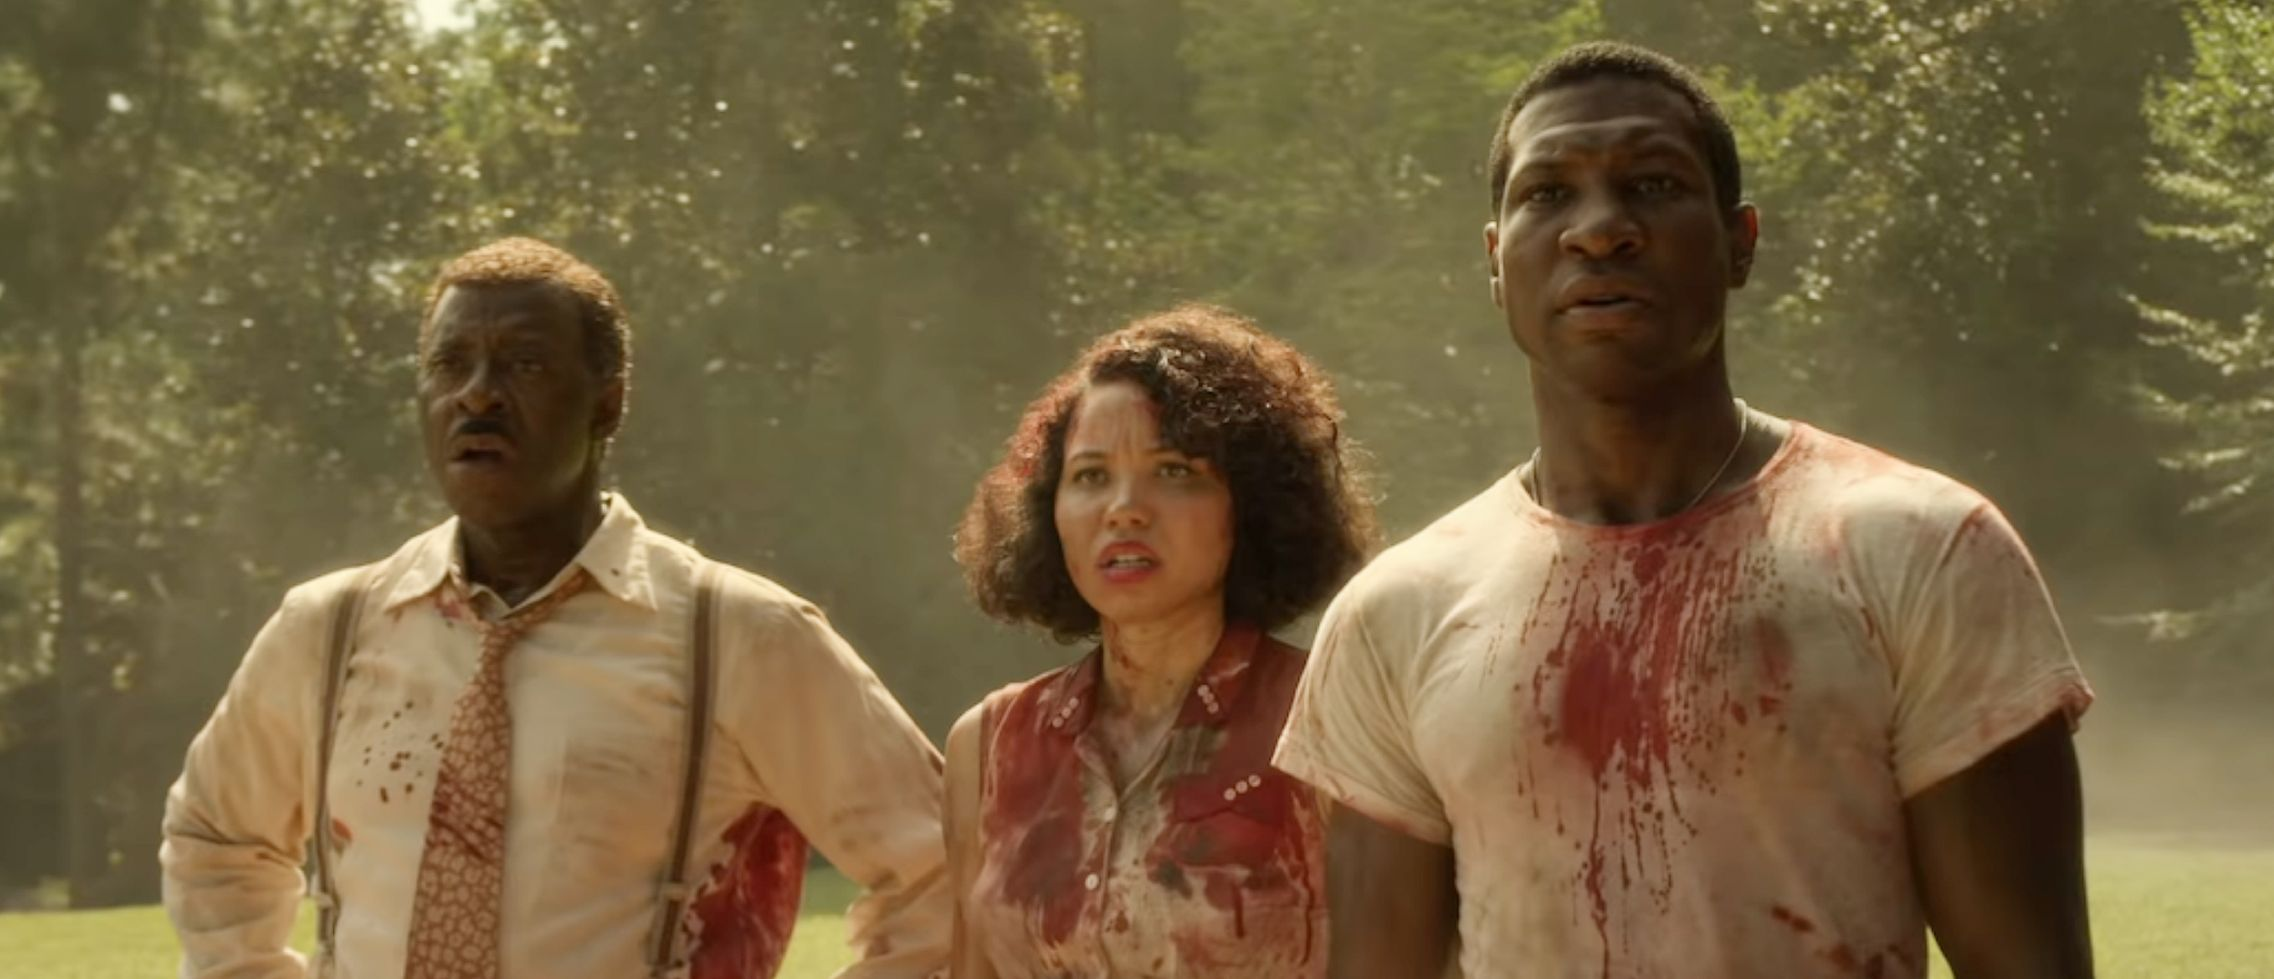 Jonathan Majors, Jurnee Smollett and Courtney B. Vance - 'Lo